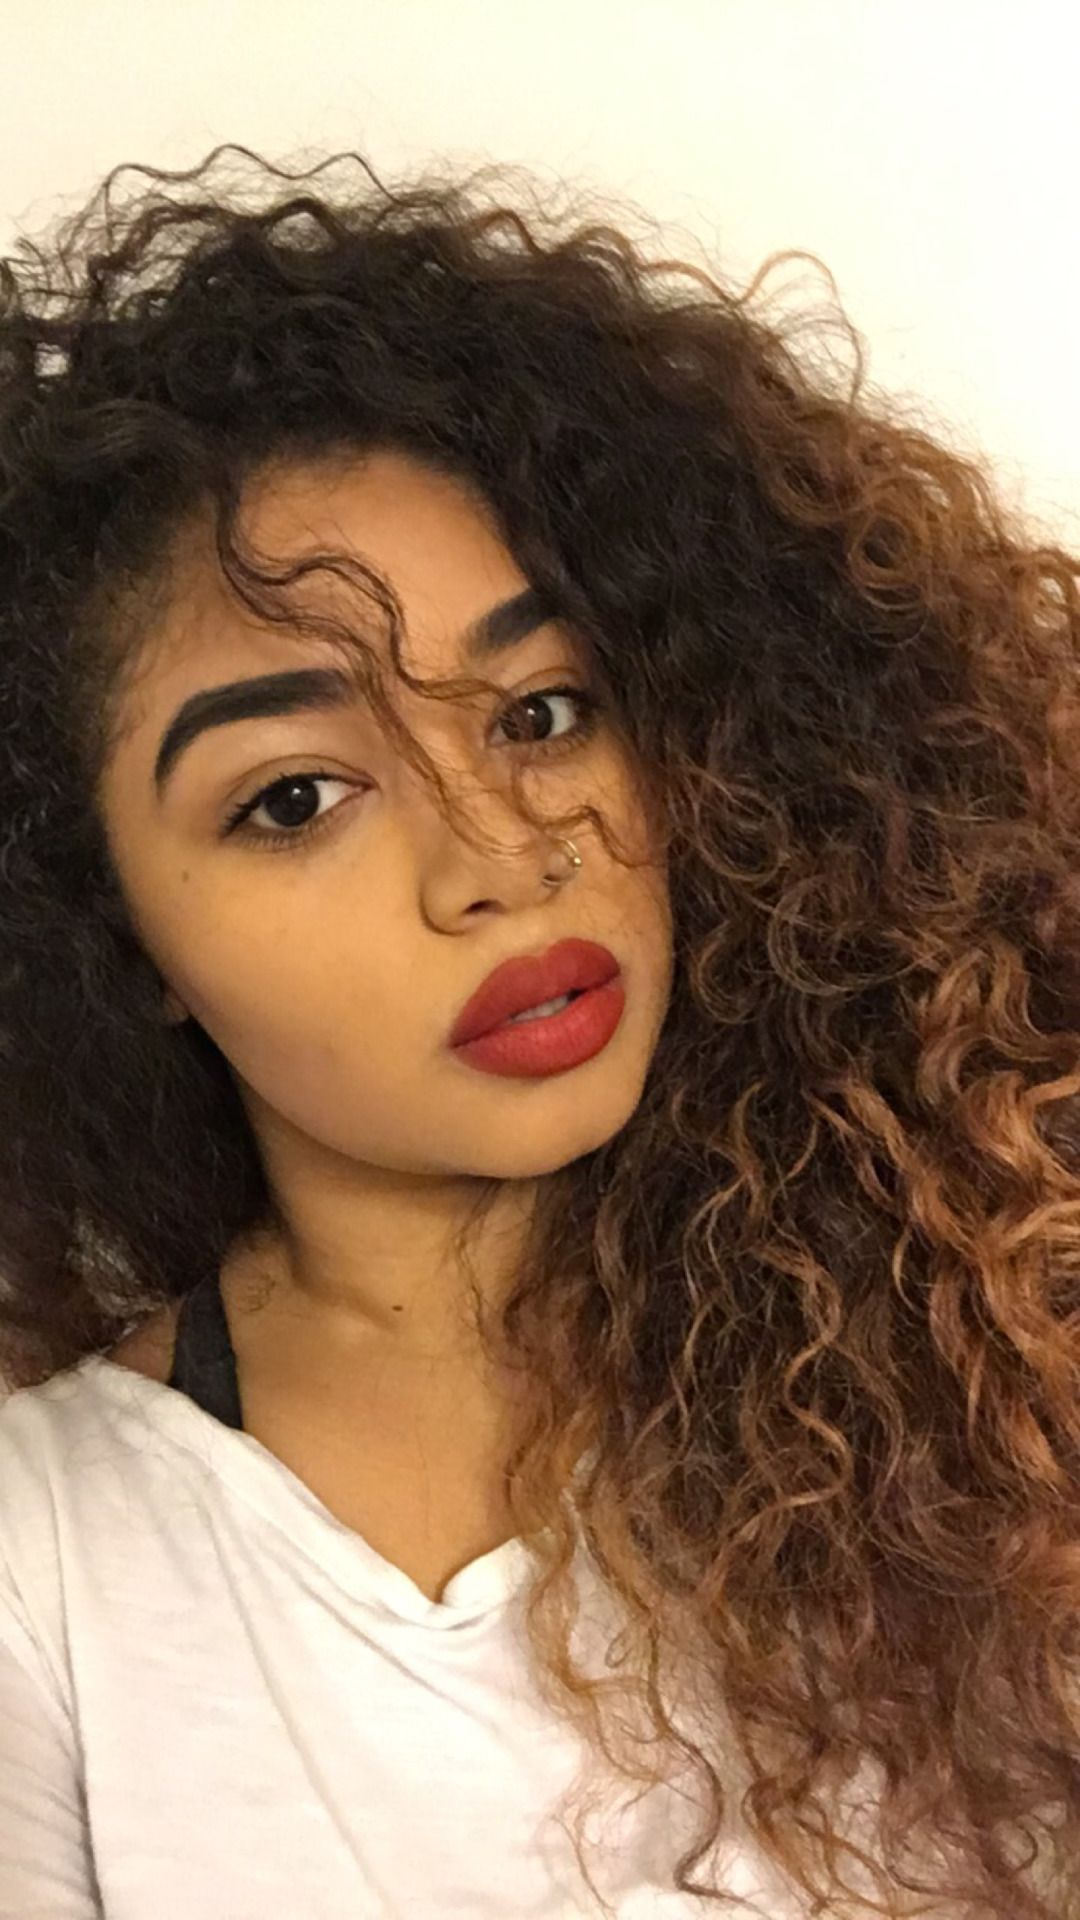 afro- colombian twitter emly_perea ig emly_perea